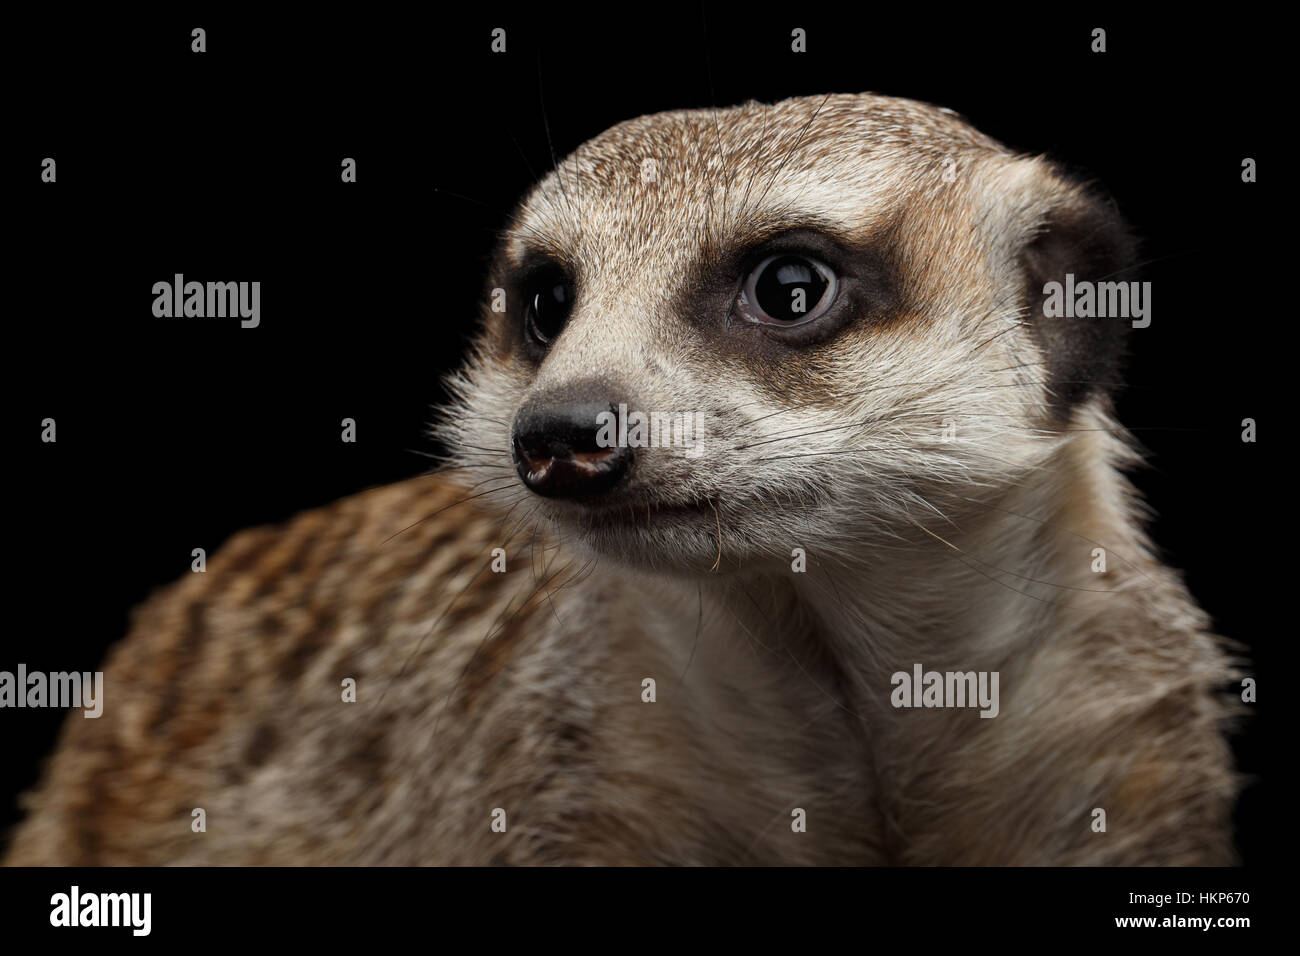 Meerkat isolated on black background - Stock Image